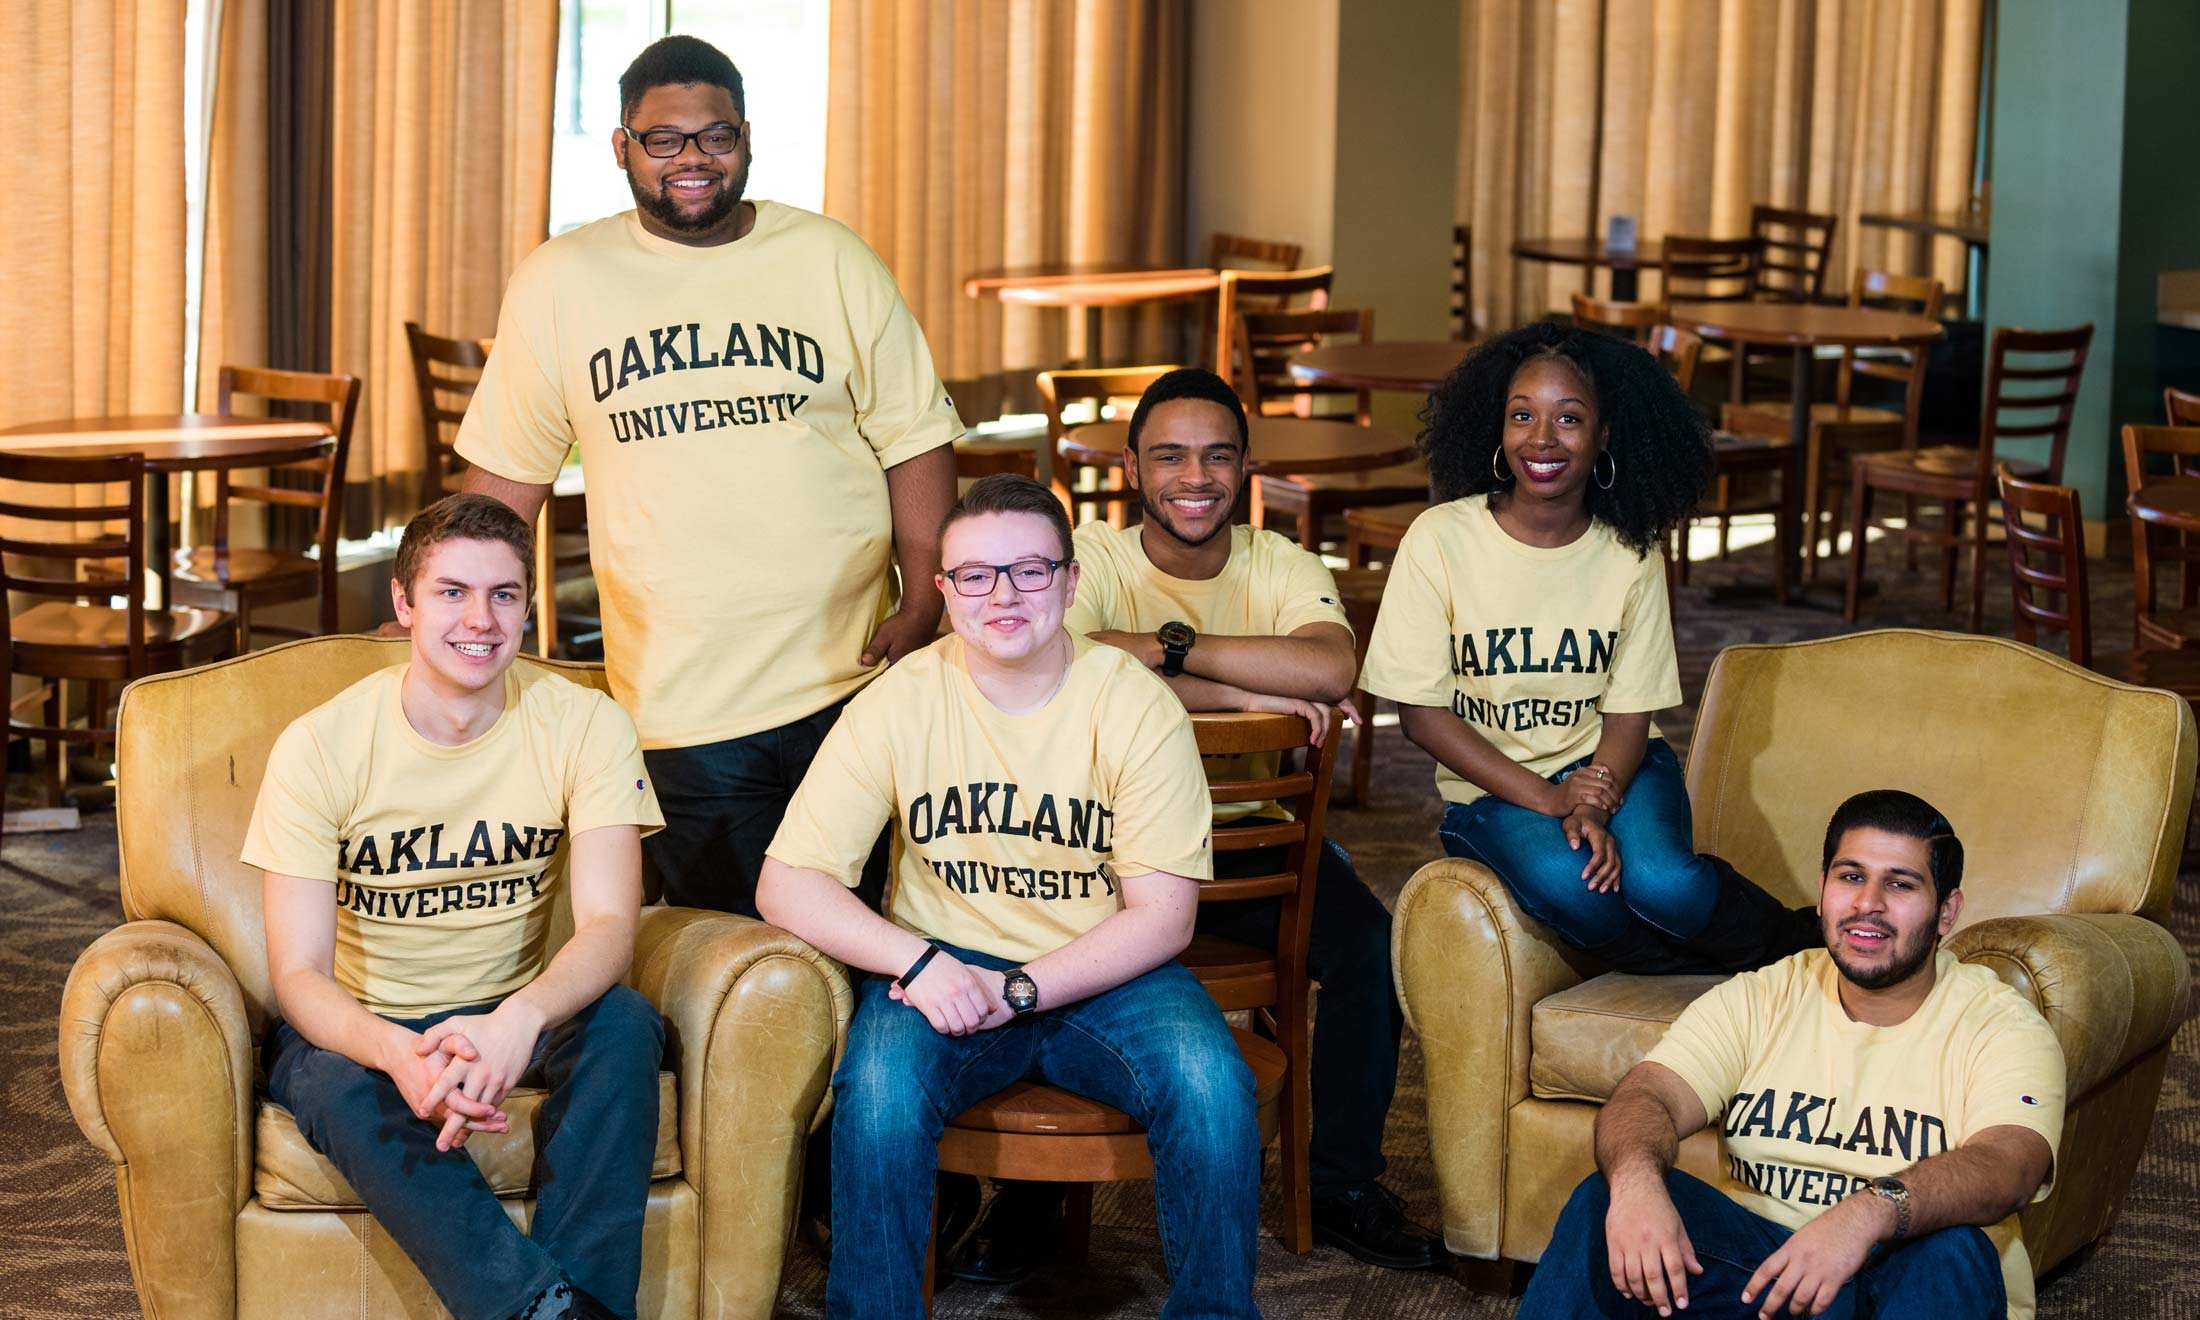 The 6 award recipients of the Oakland University 2017 Keeper of the Dream posing in a room with tables and chairs behind them